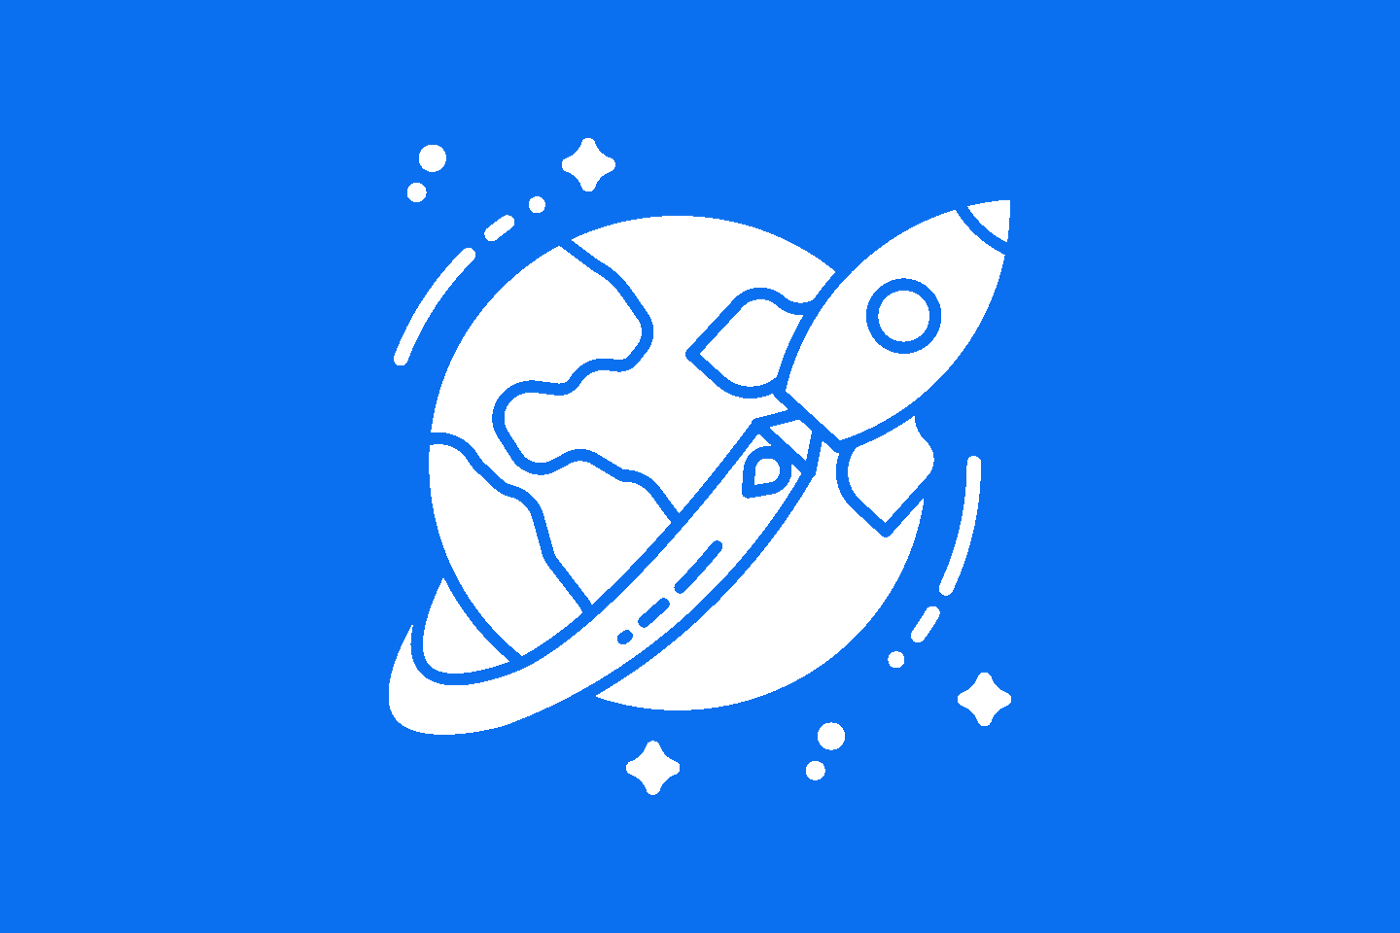 An illustration of a rocket circling around the Earth.